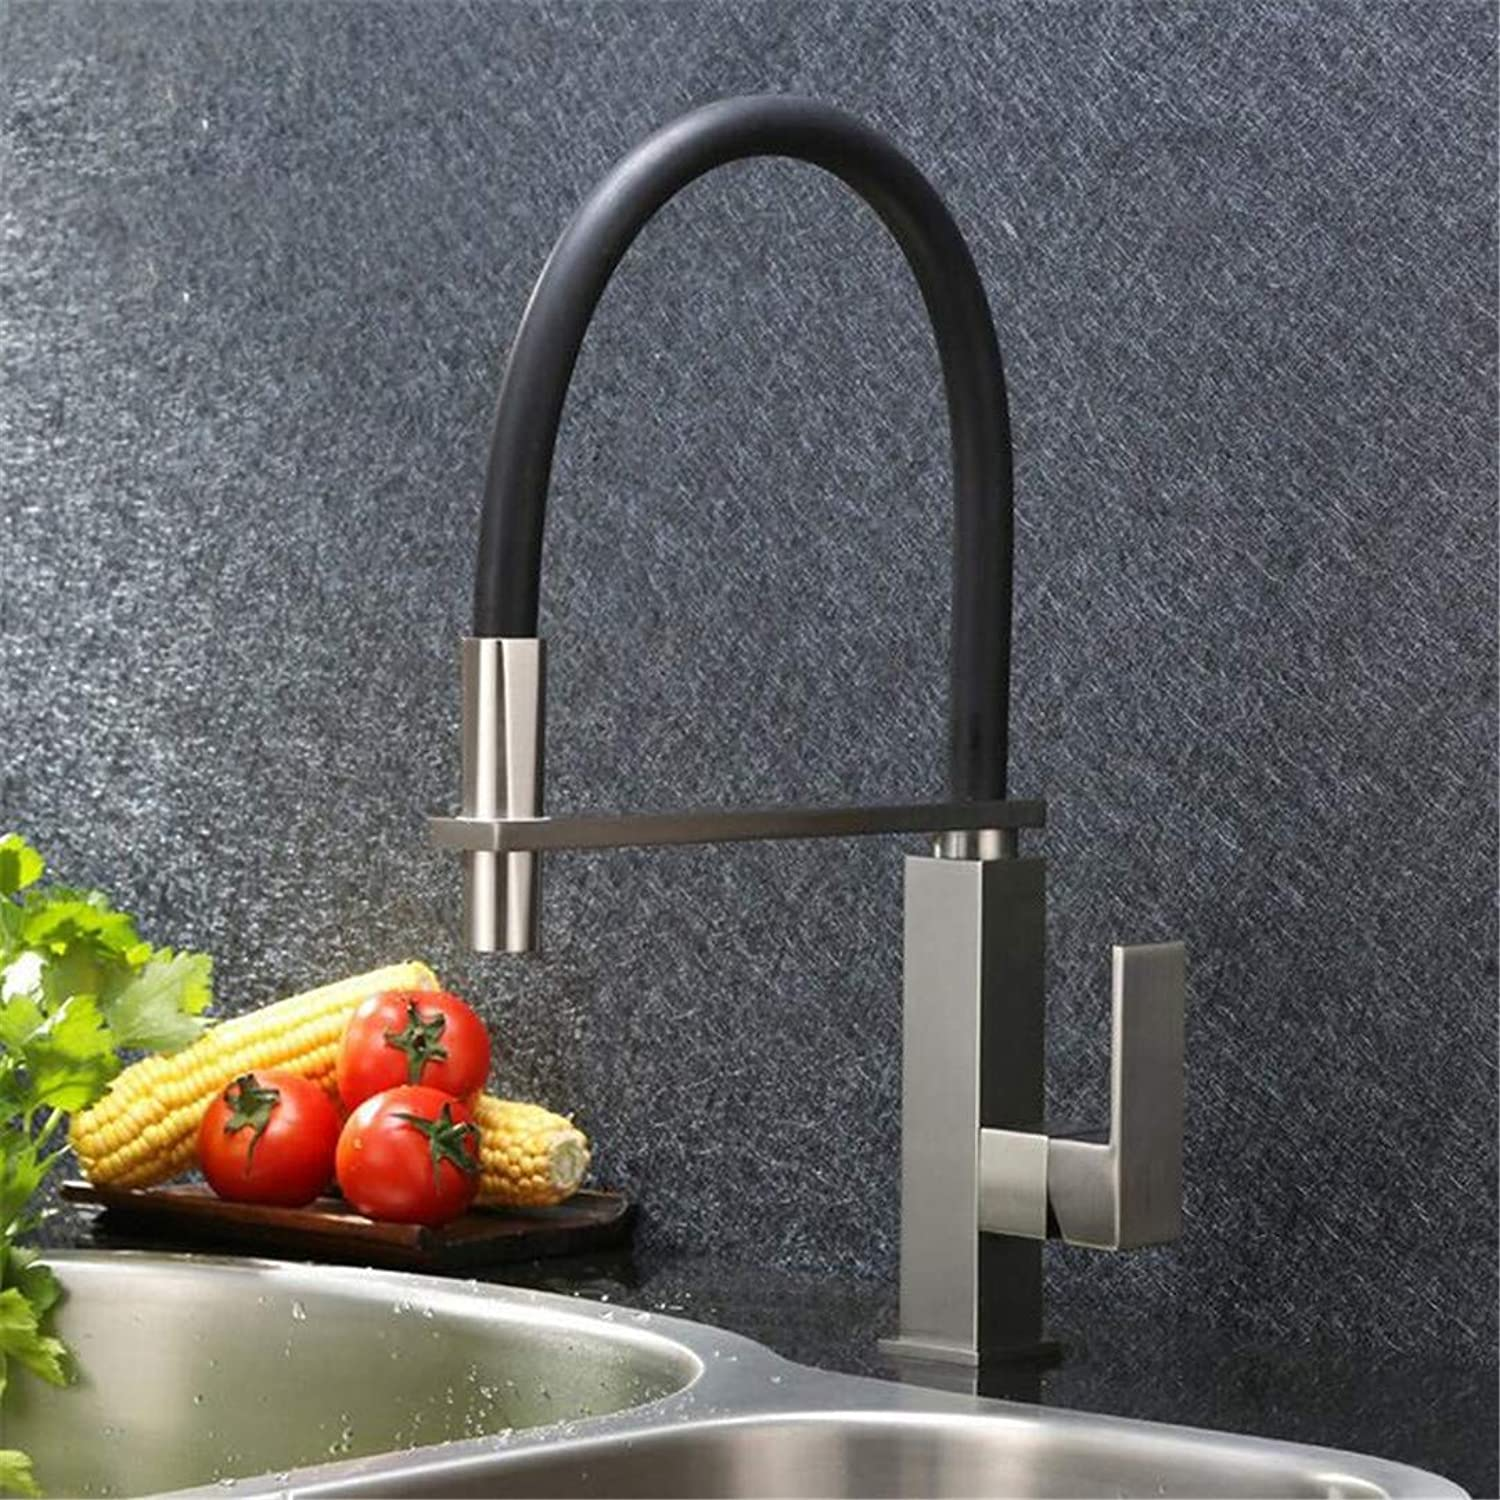 Faucet Washbasin Mixer Brushed Unleaded Brass Kitchen Faucet Square Pull Down Out Tap Single Hole Mixer Faucet